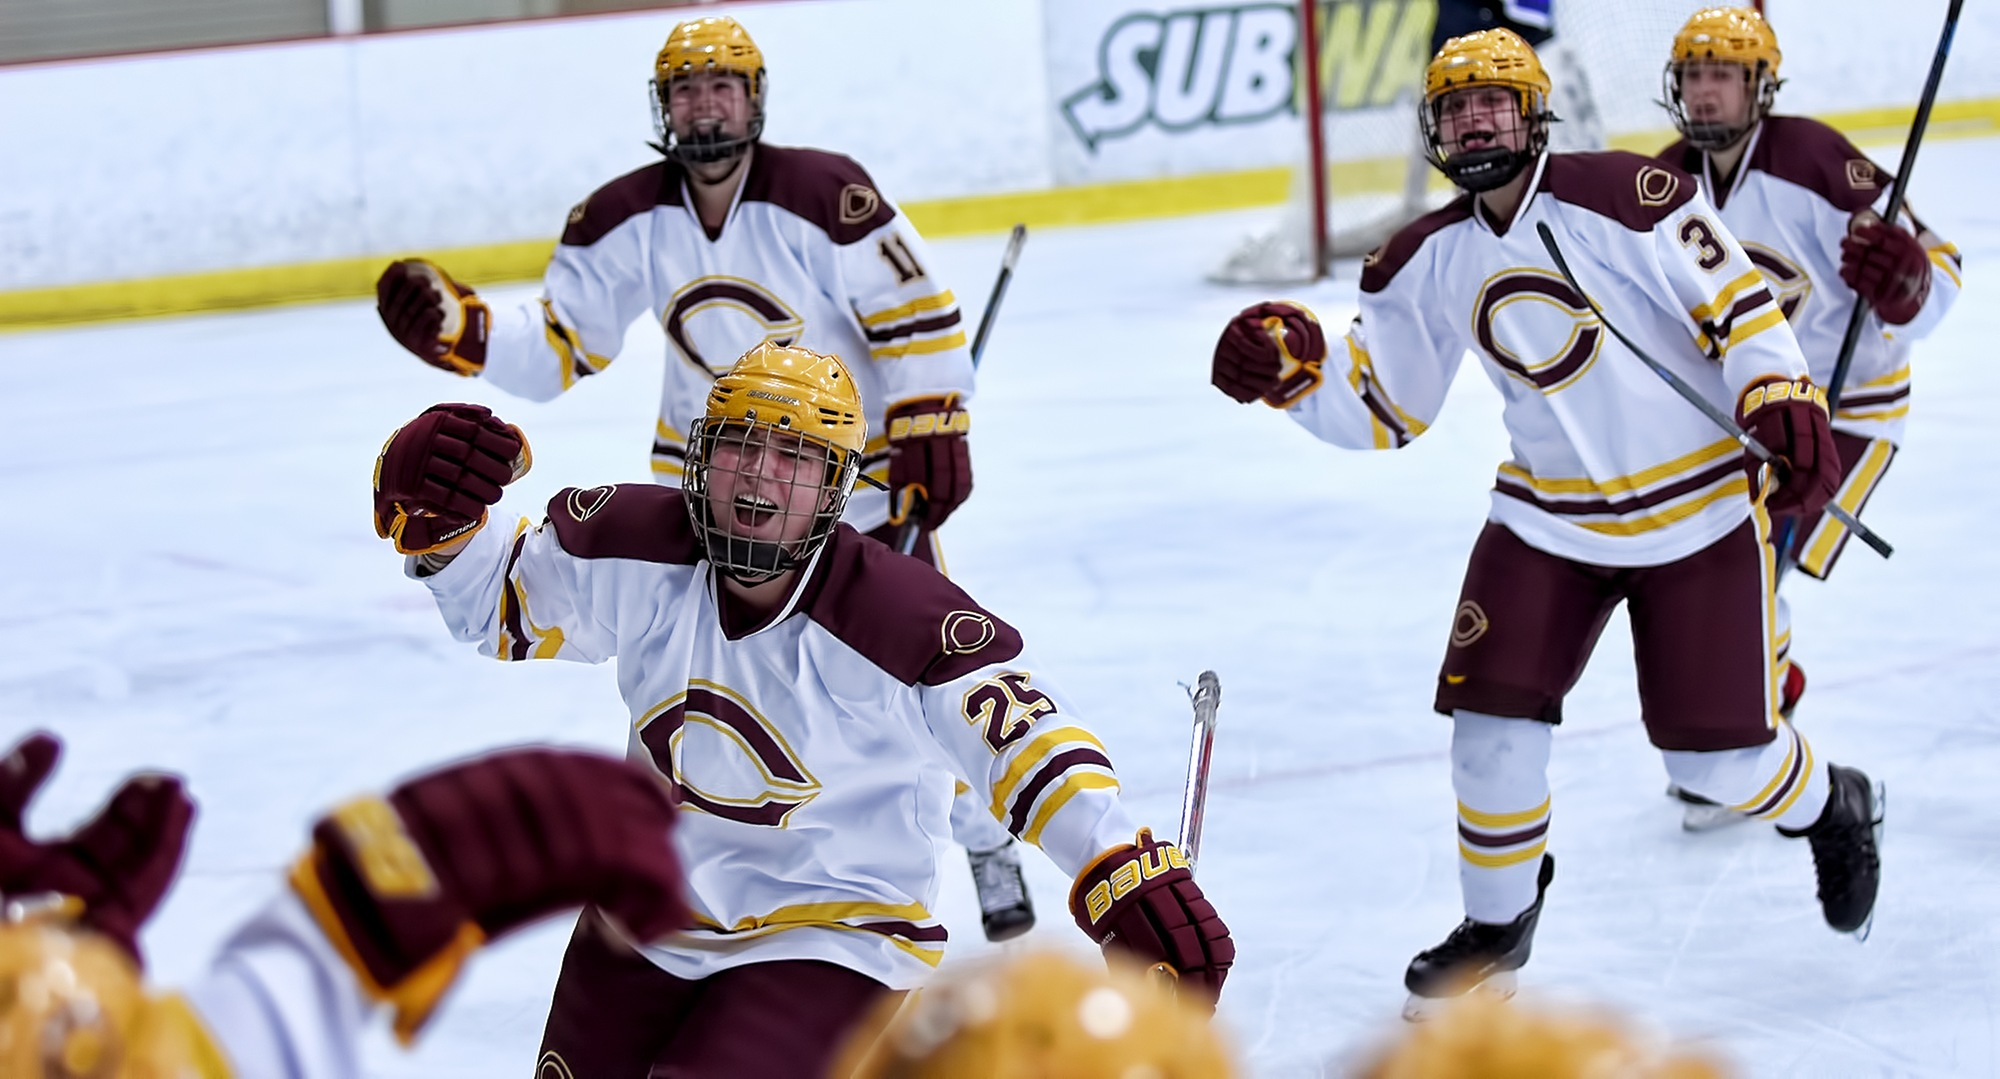 Sophomore Anna Ballweber celebrates her game-winning goal in the Cobbers' 1-0 win over Finlandia on Saturday.